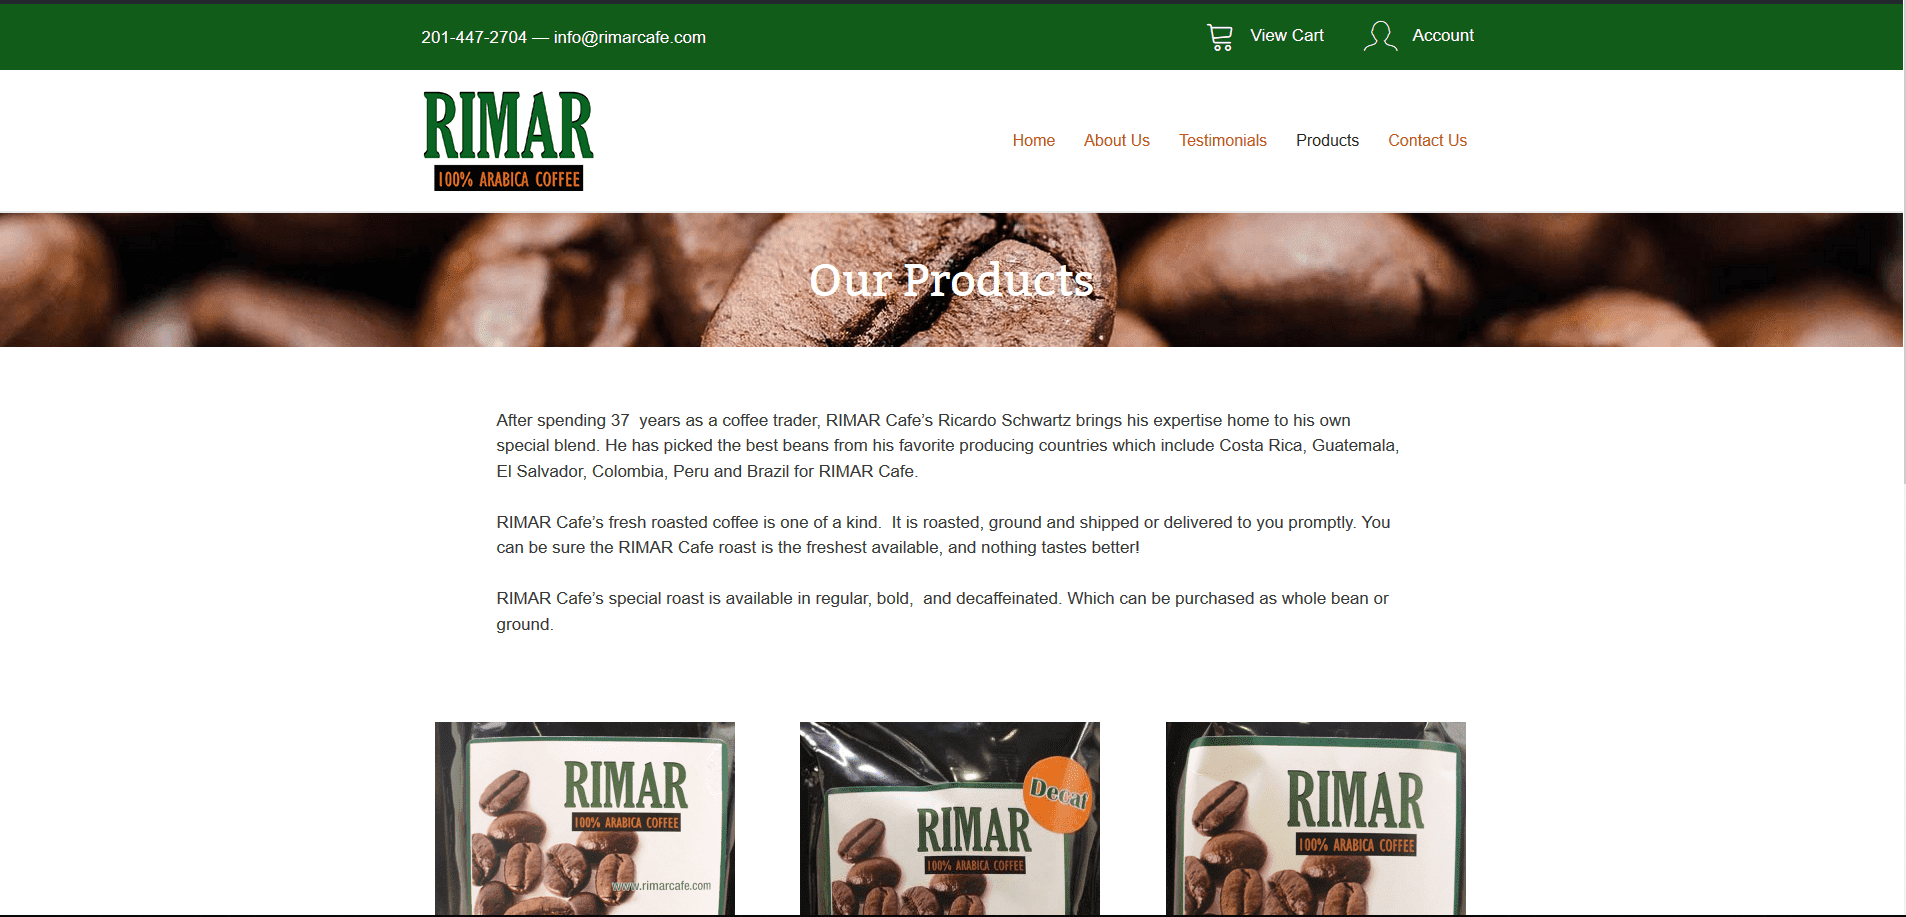 Rimar Cafe Products